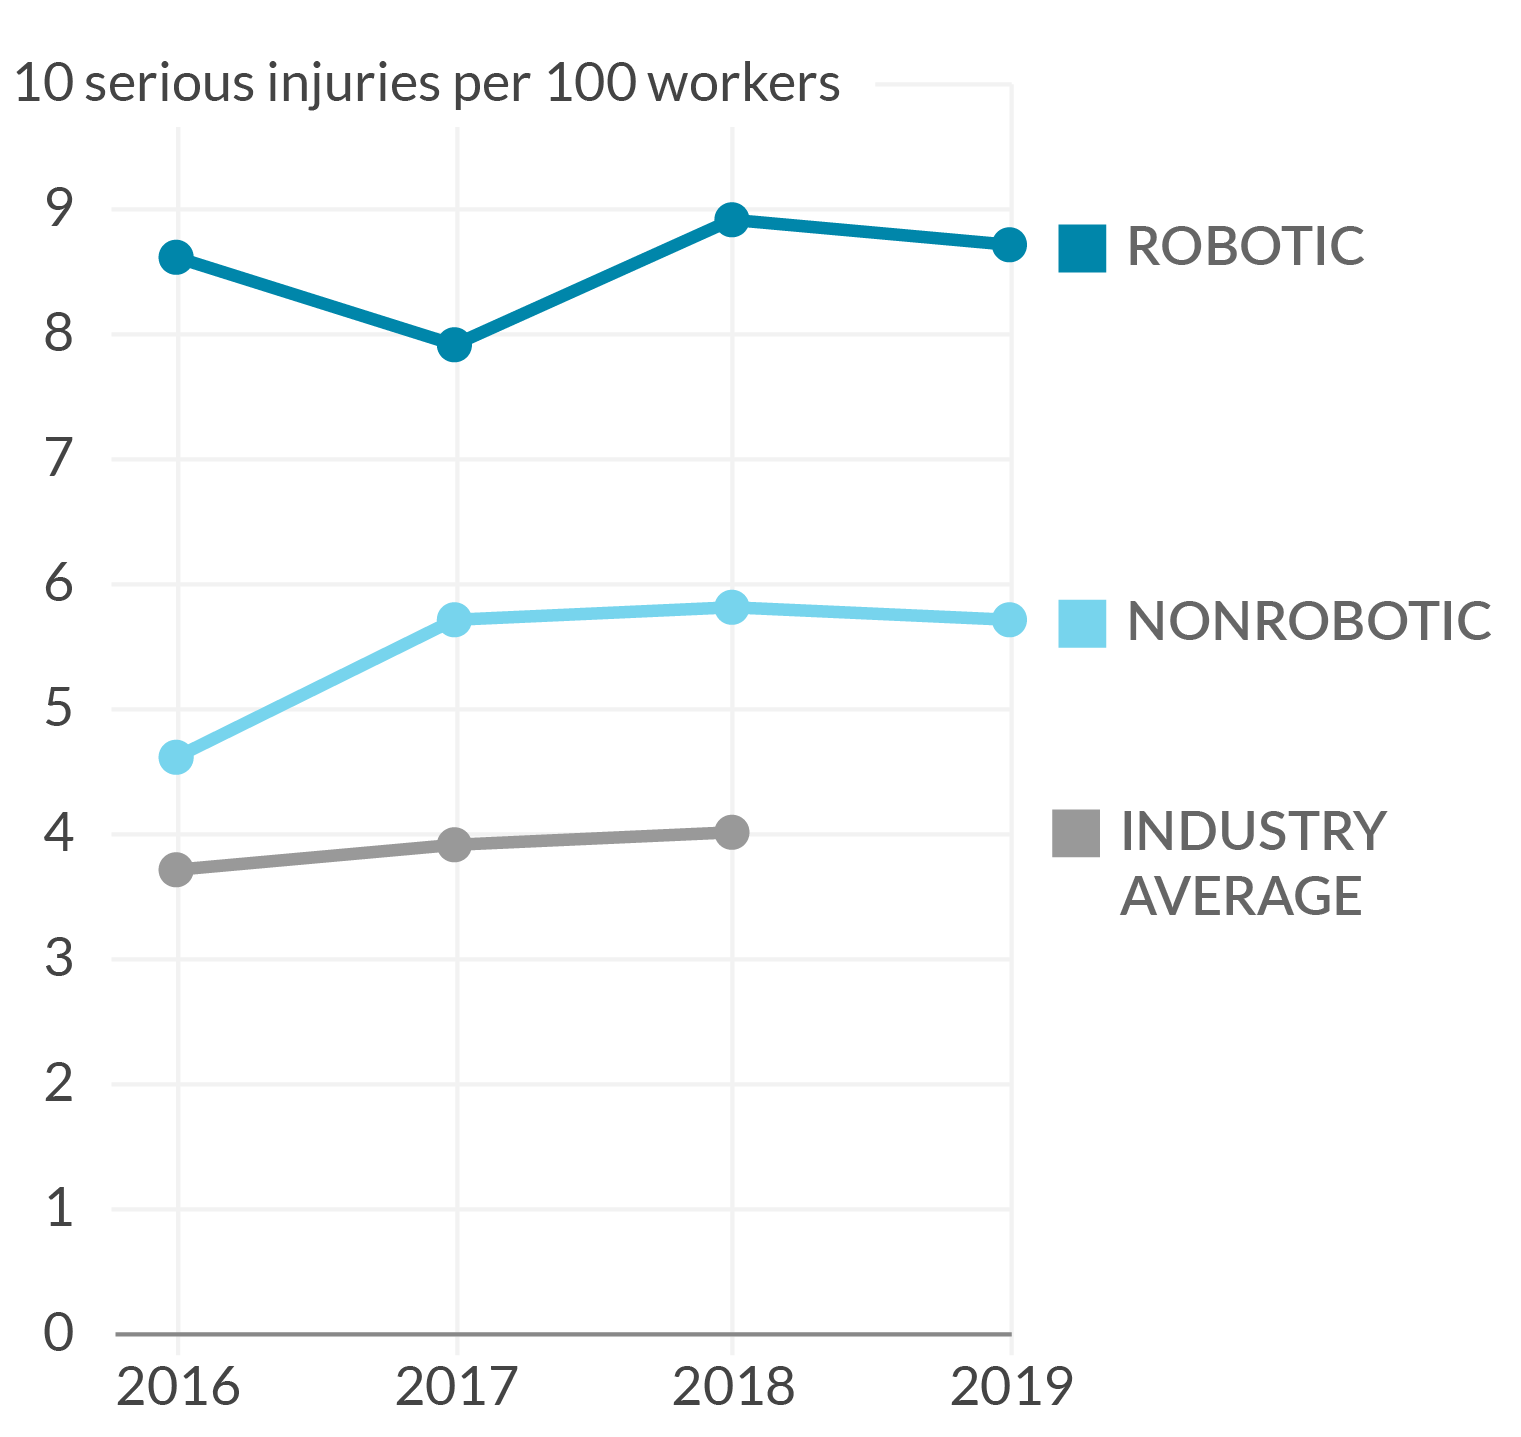 Line chart of Amazon warehouse serious injury rates from 2016 to 2019 that shows Amazon's robotic warehouses have higher injury rates than their nonrobotic counterparts.